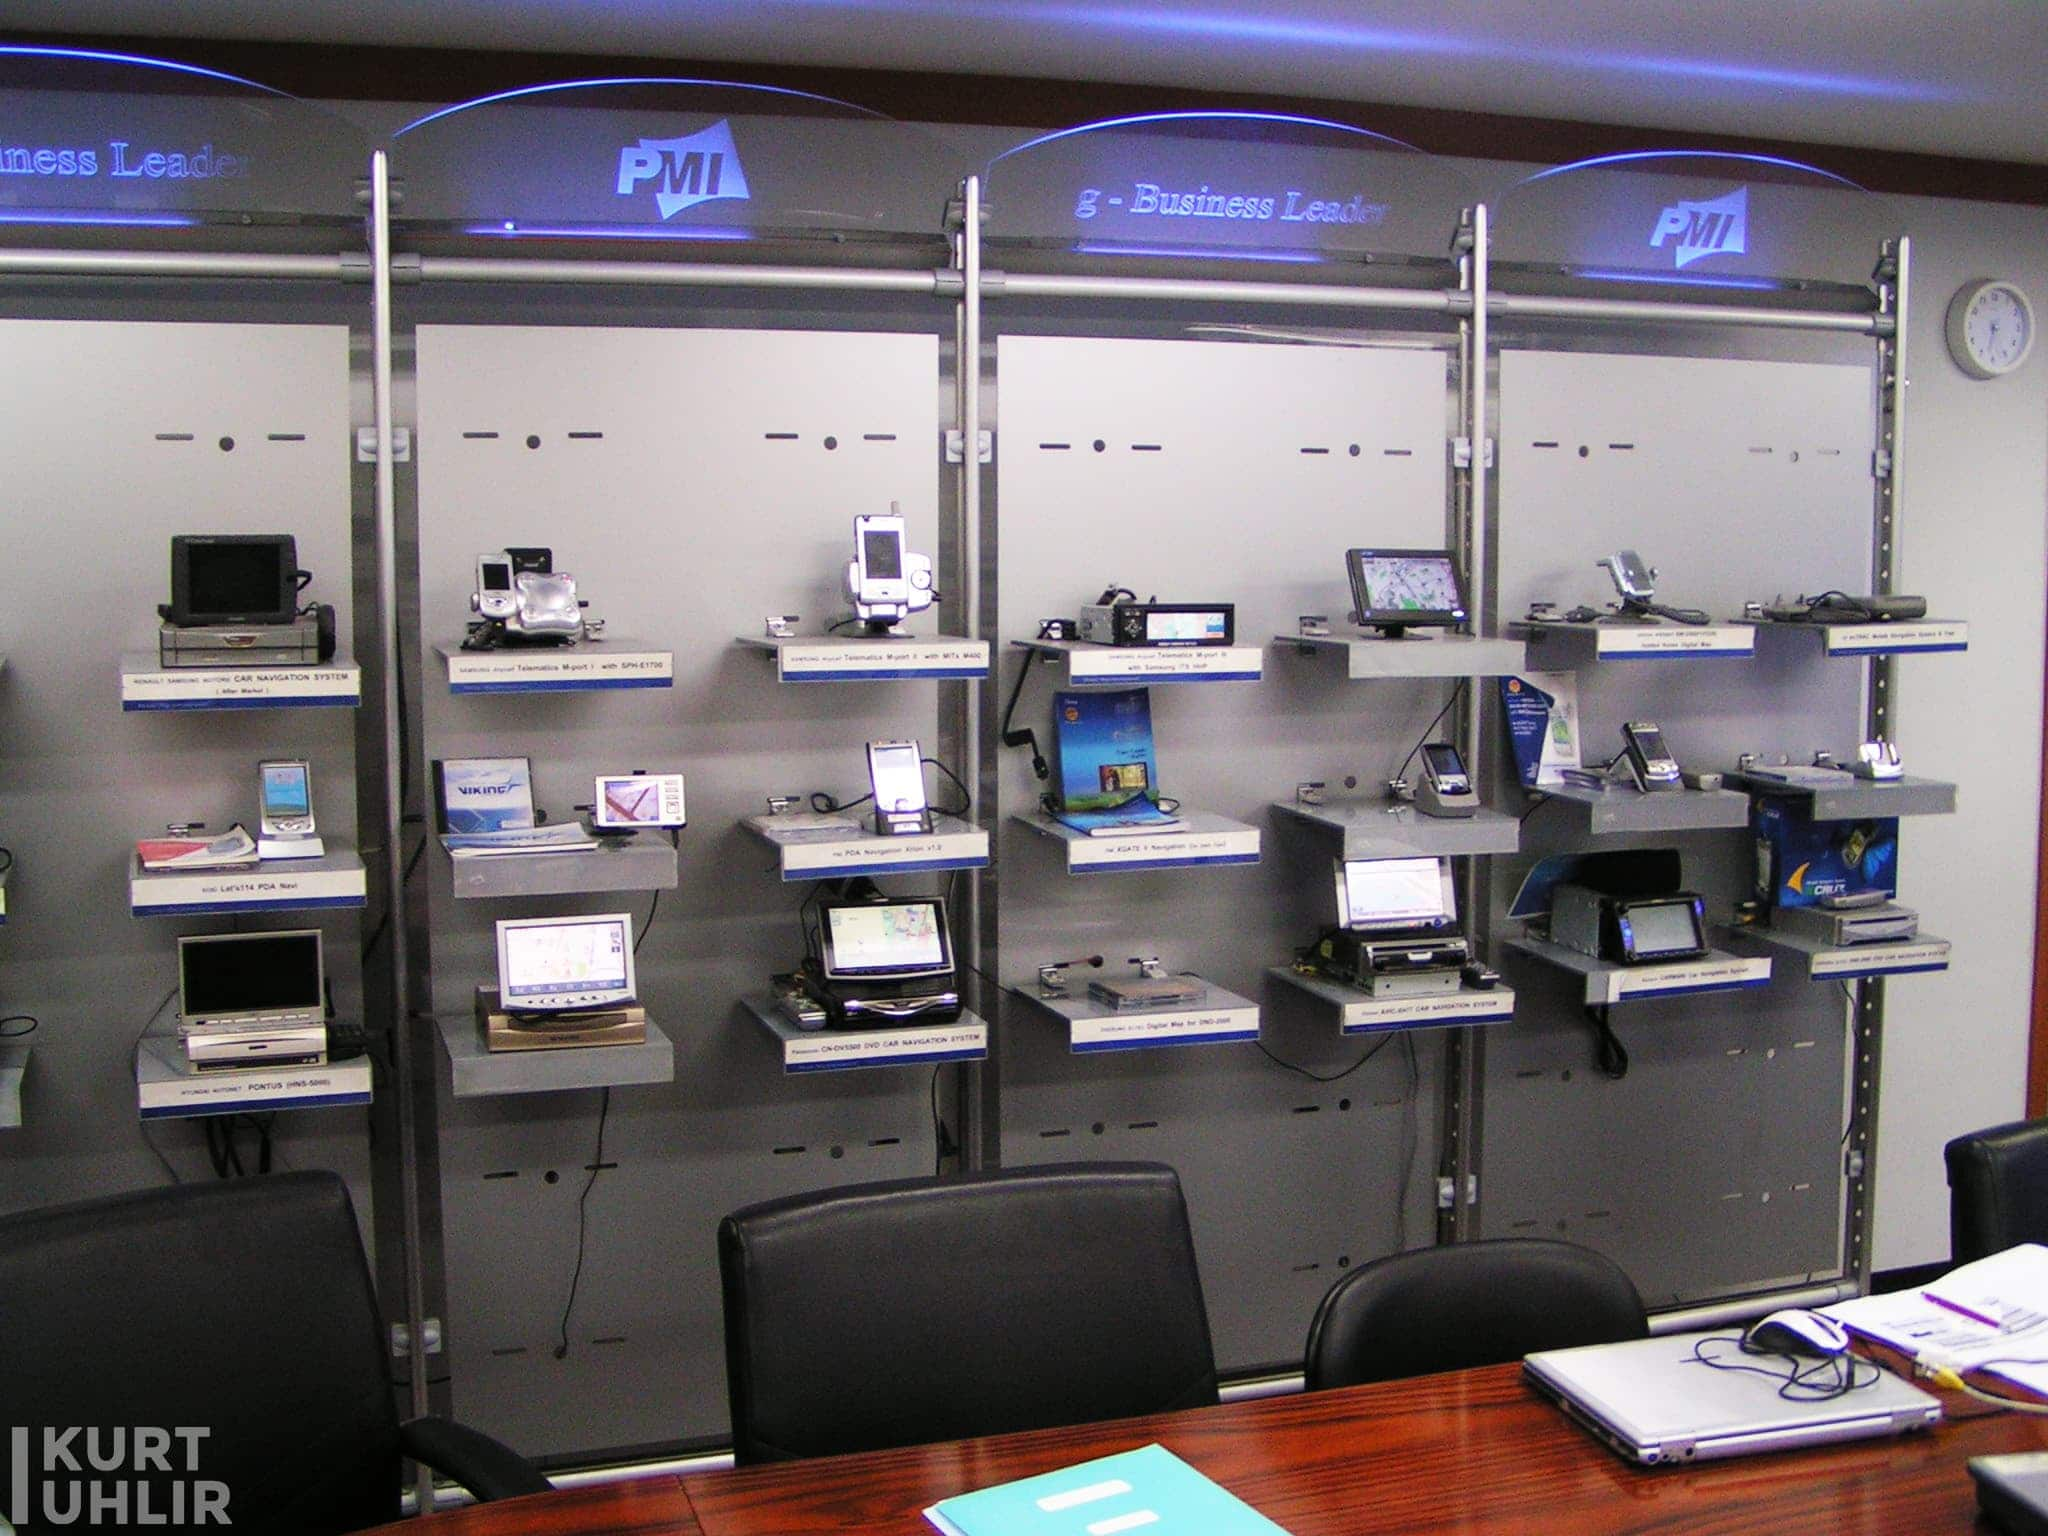 In July 2005, Navteq acquired Picture Map International (PMI), a South Korean digital map company, for about $30 million. It's great to see a wall of all of the devices using PMI maps in South Korea.